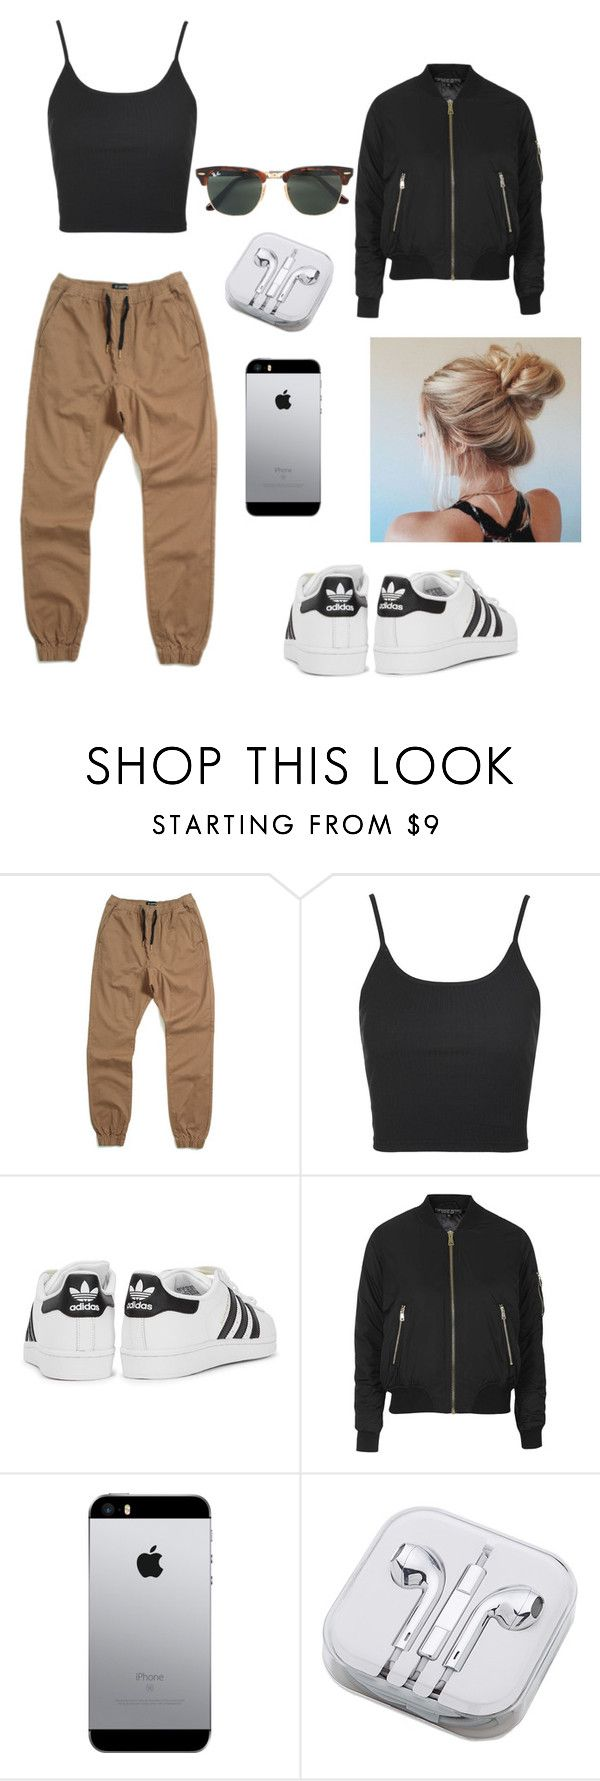 how to wear adidas by karlamichell on Polyvore featuring moda, Topshop, Zanerobe, adidas Originals, Ray-Ban and PhunkeeTree